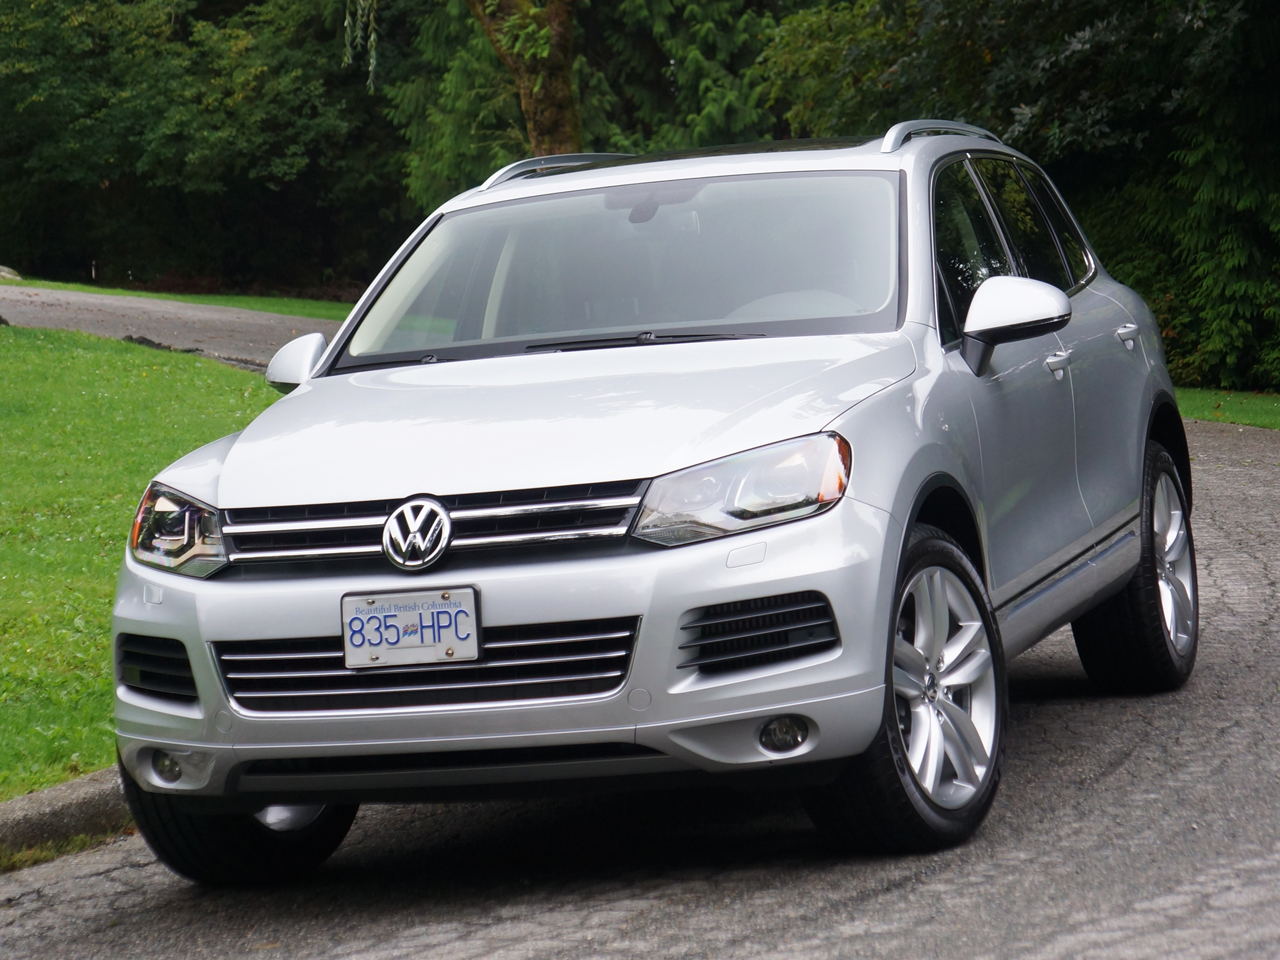 2017 Volkswagen Touareg Tdi Road Test Review